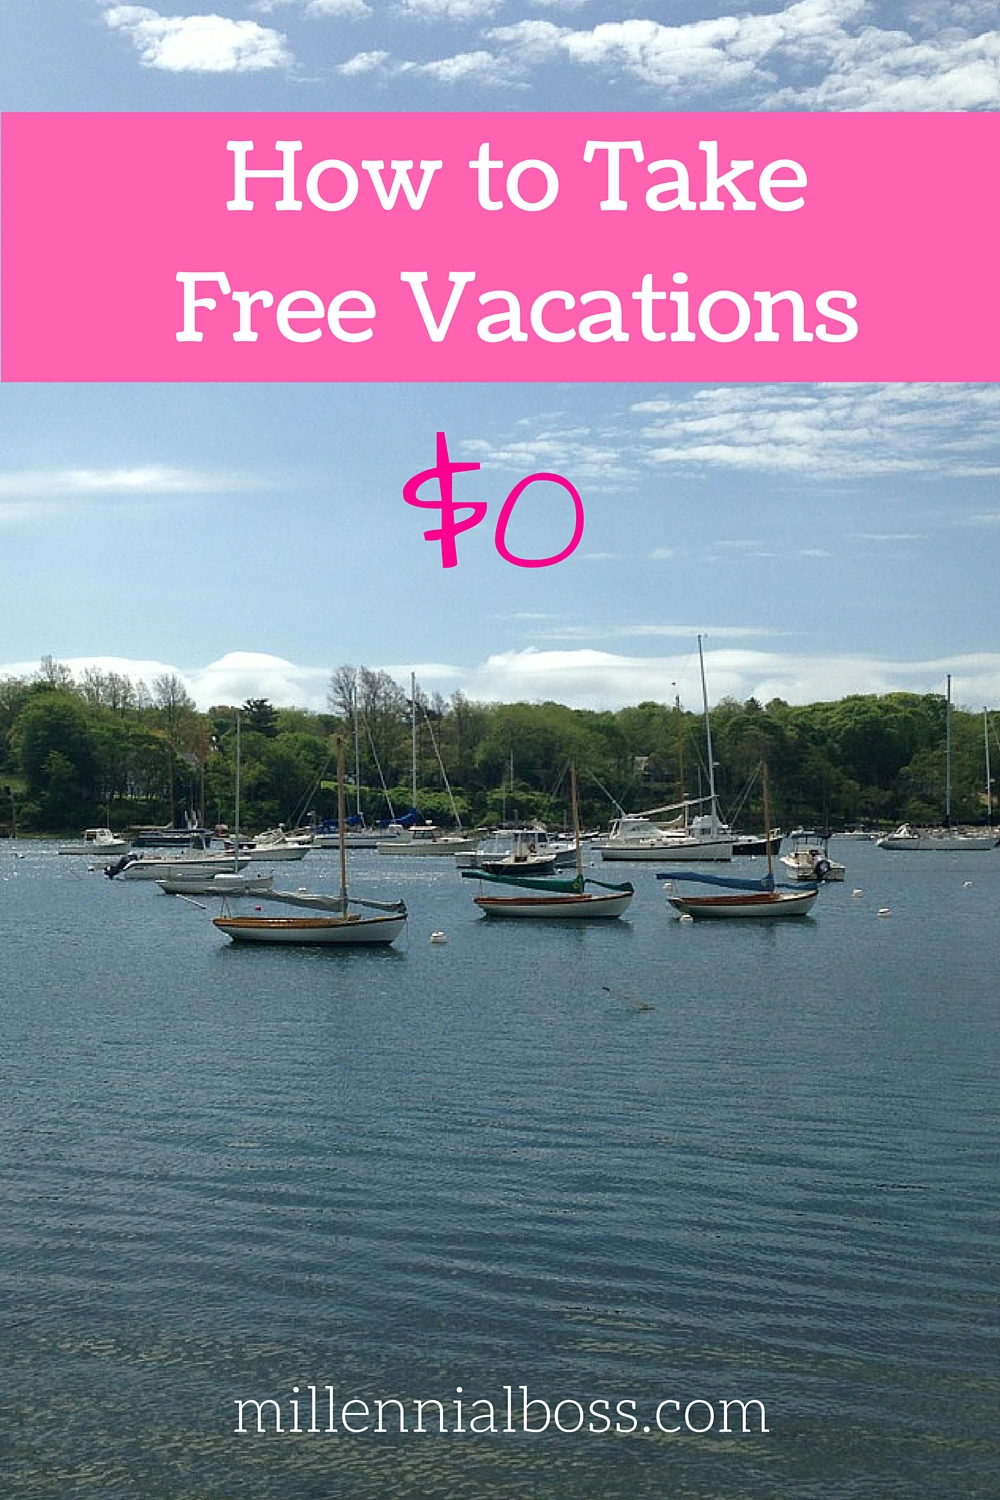 How to Take Free Vacations